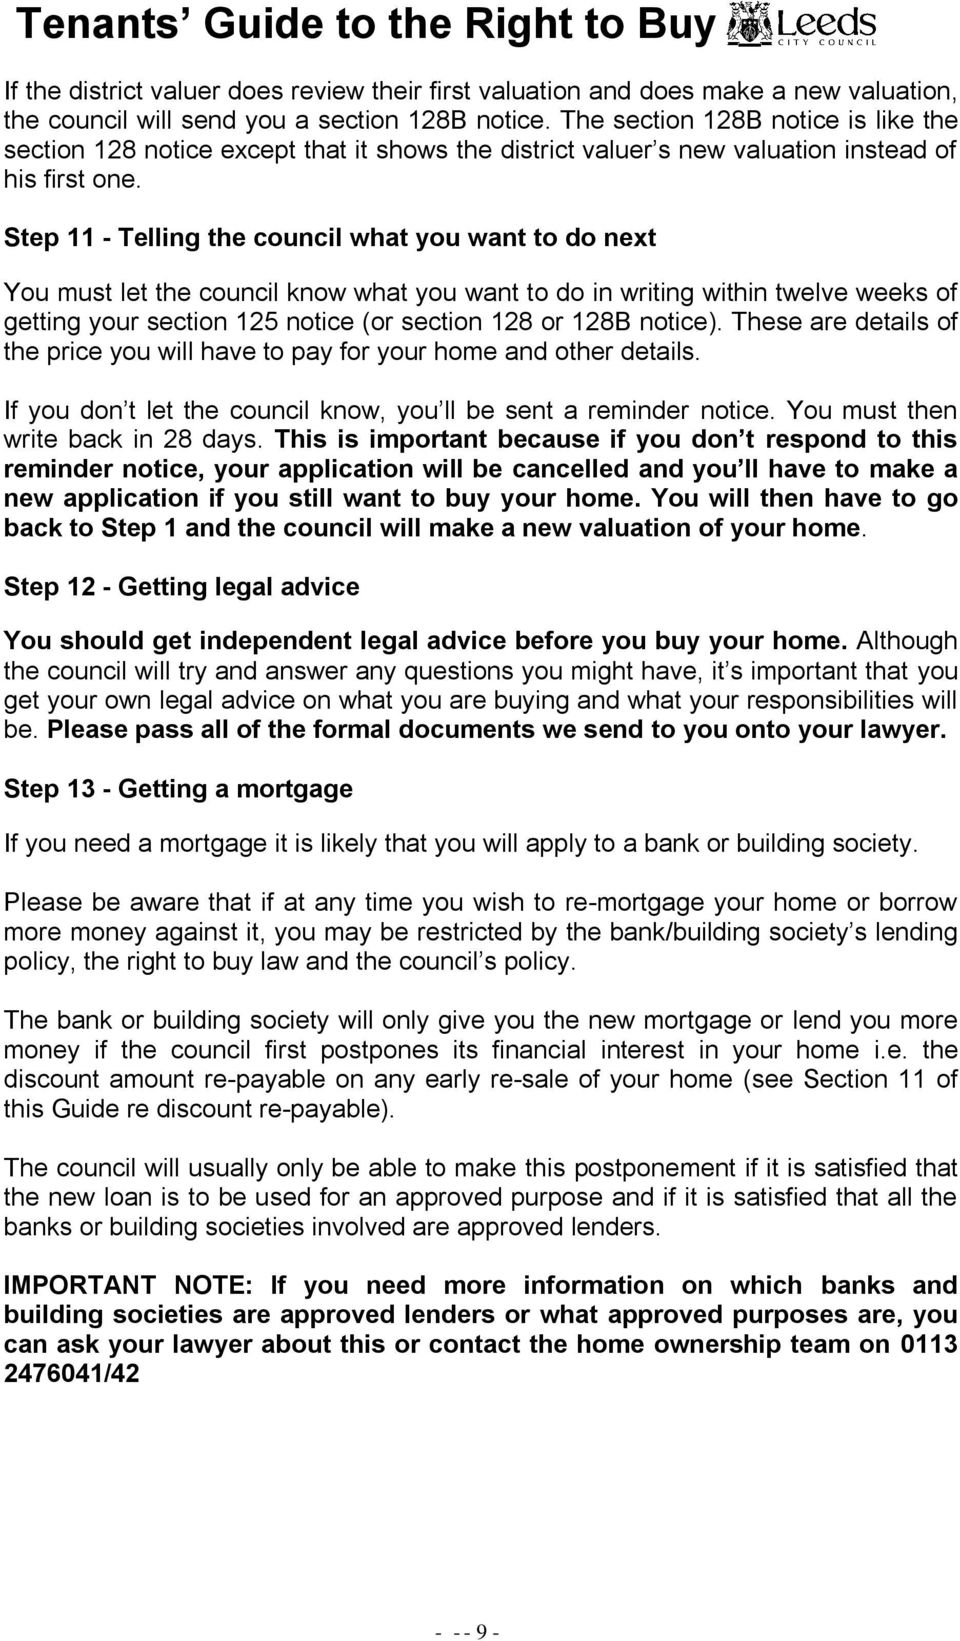 Step 11 - Telling the council what you want to do next You must let the council know what you want to do in writing within twelve weeks of getting your section 125 notice (or section 128 or 128B